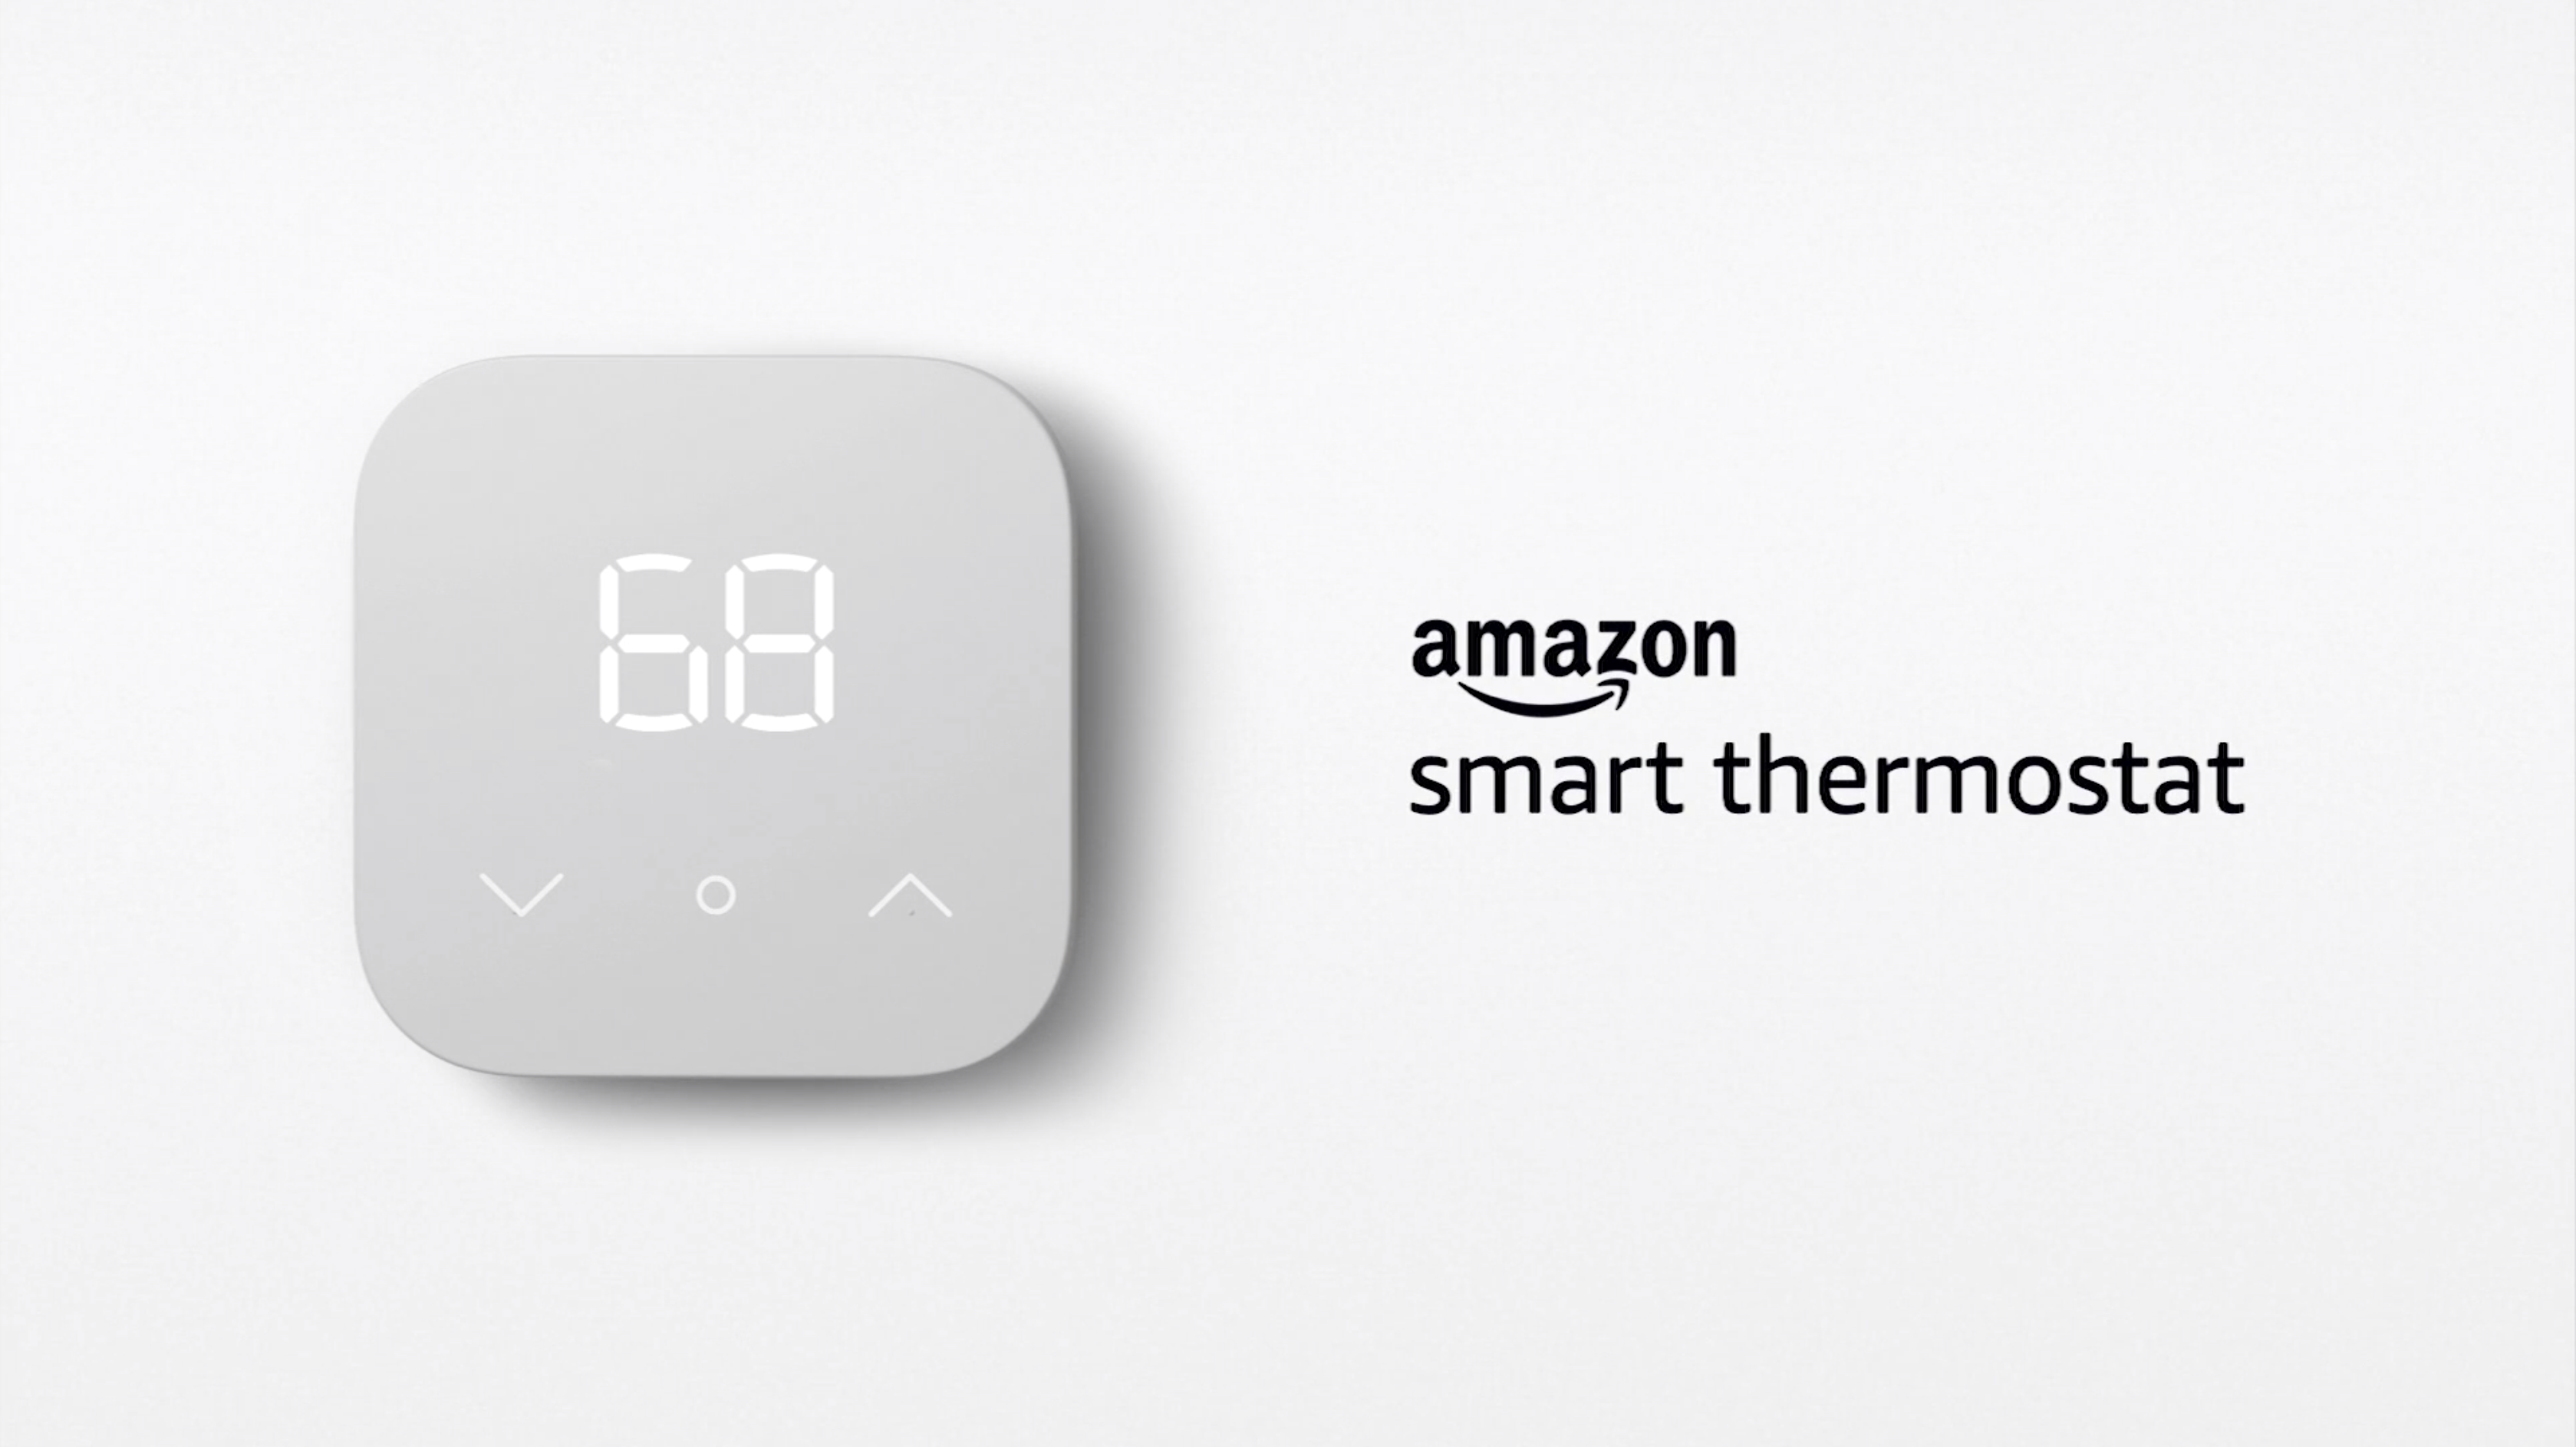 Amazon Smart Thermostat, unveiled at Amazon 2021 event